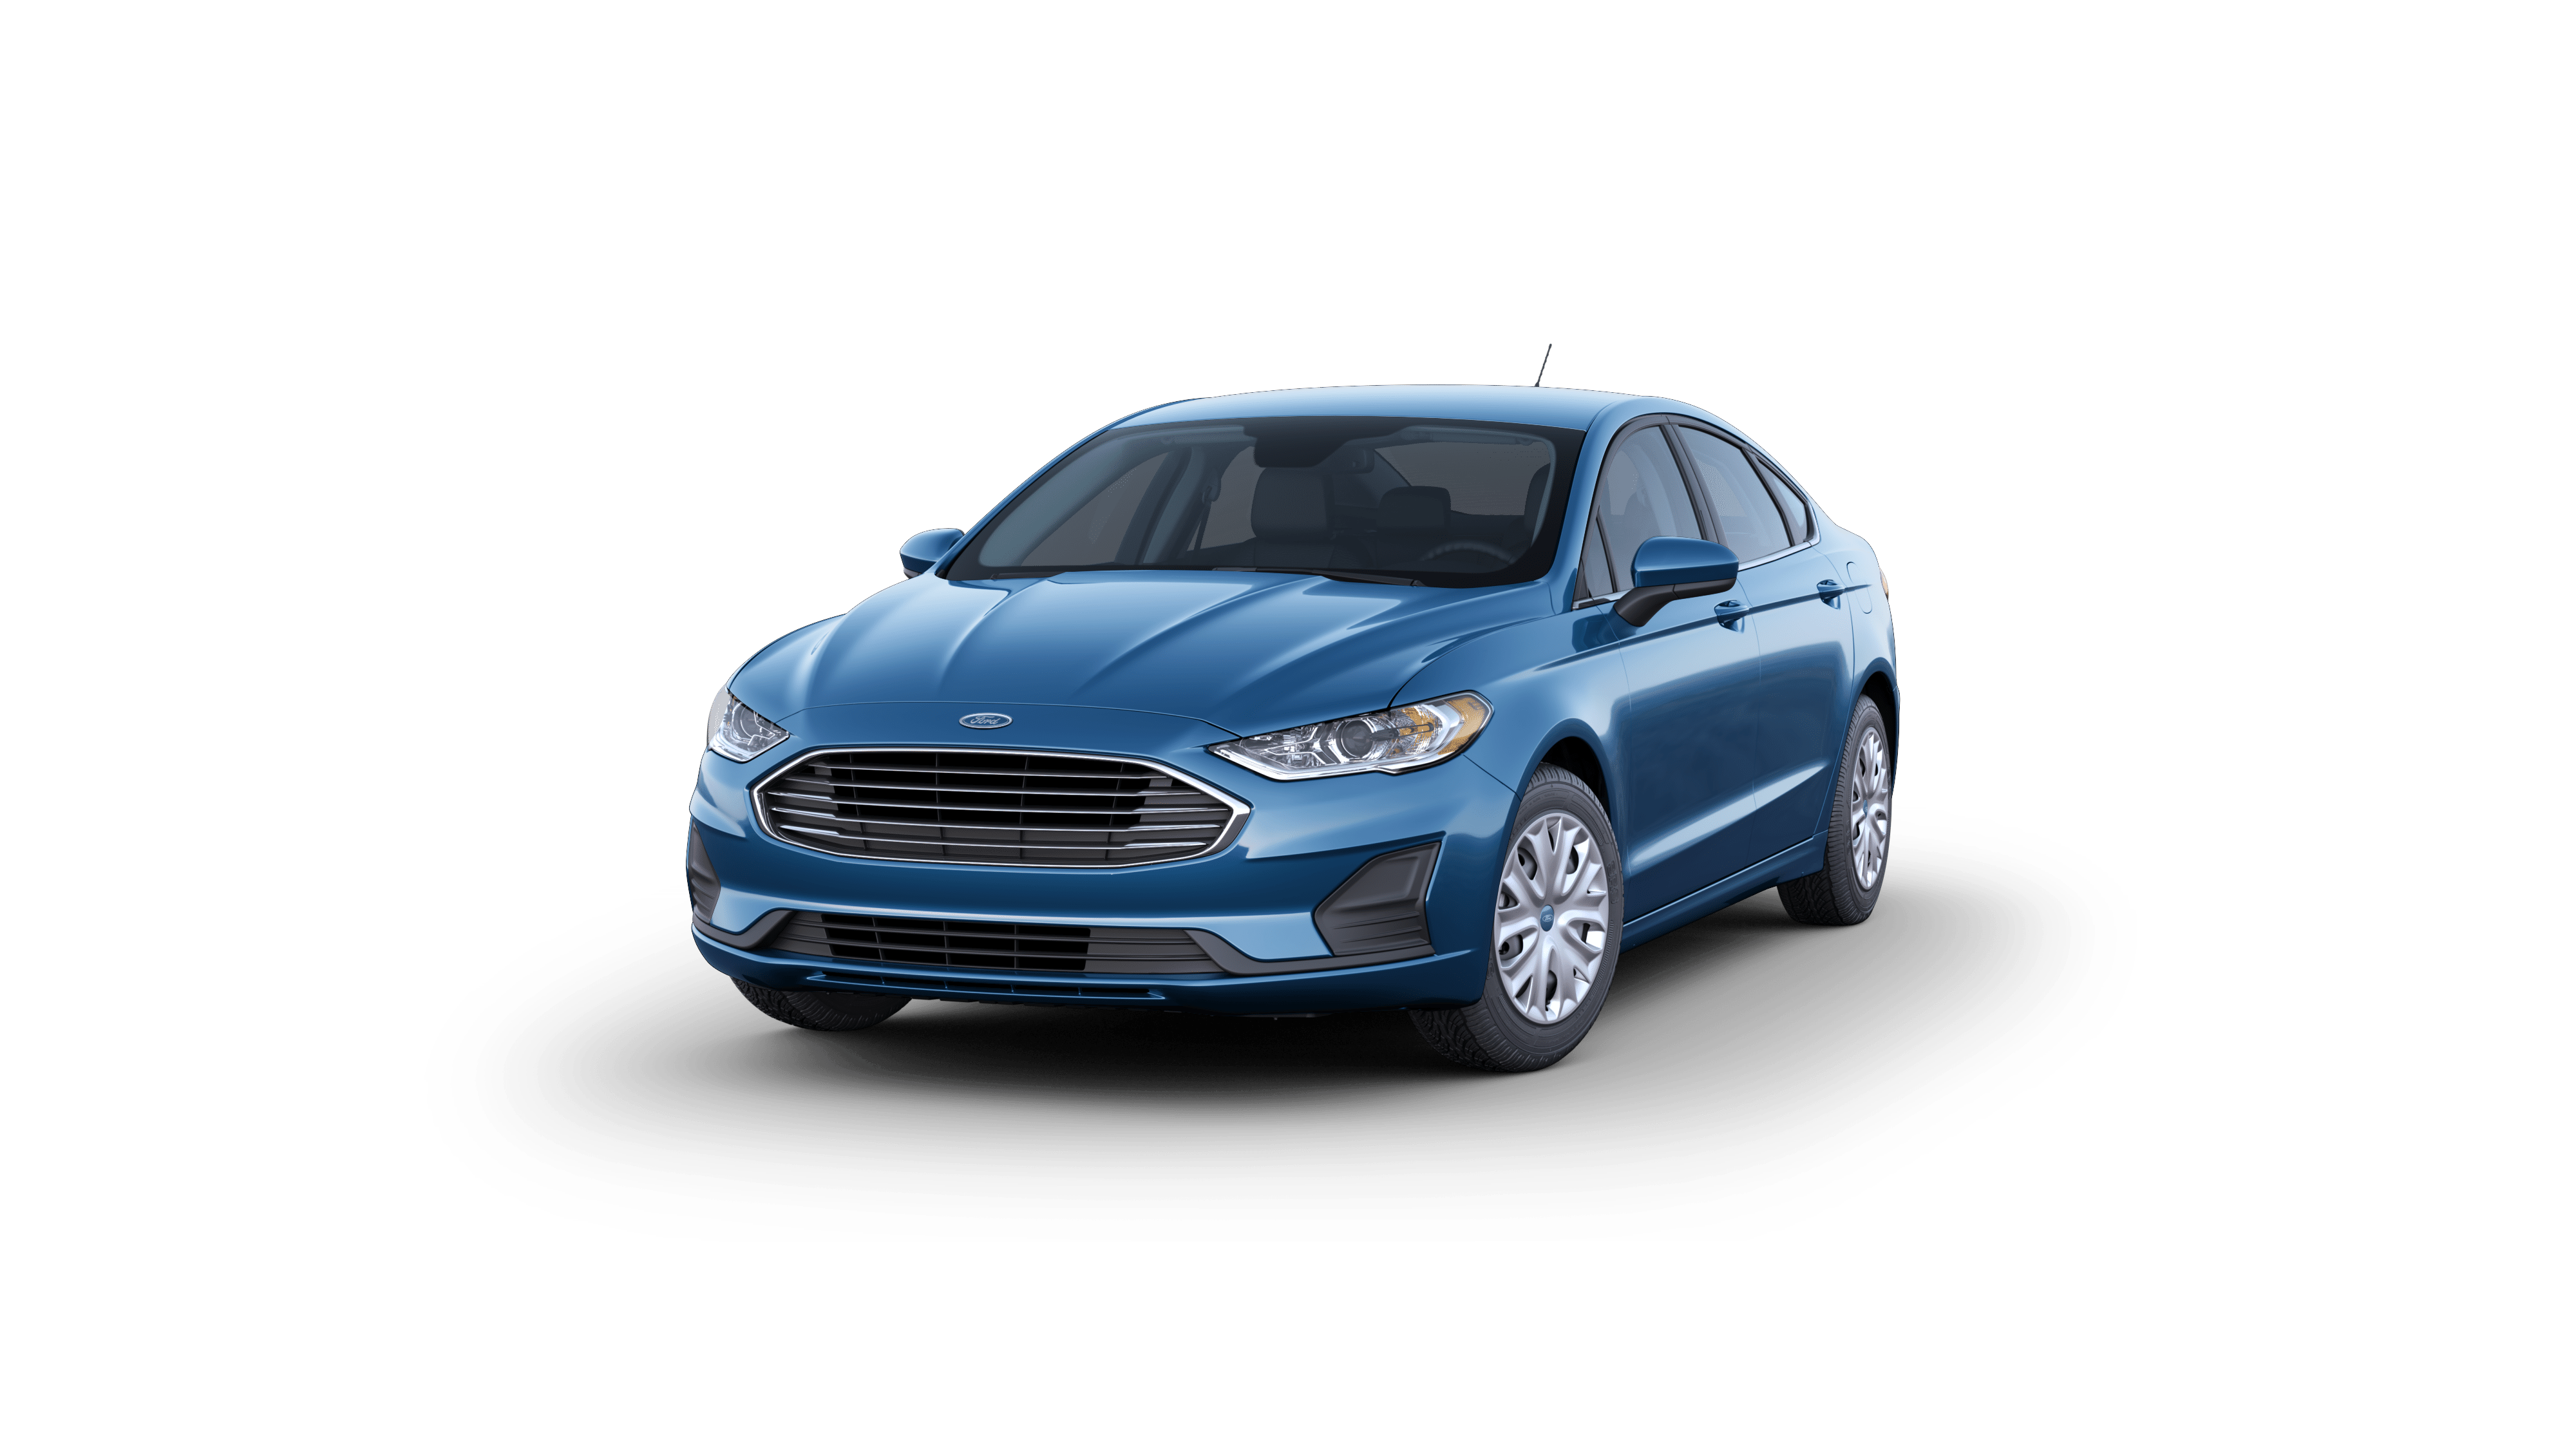 Ford Dealership Peoria Il >> 2019 Ford Fusion for sale in East Peoria - 3FA6P0G78KR164162 - Uftring Ford, Inc.